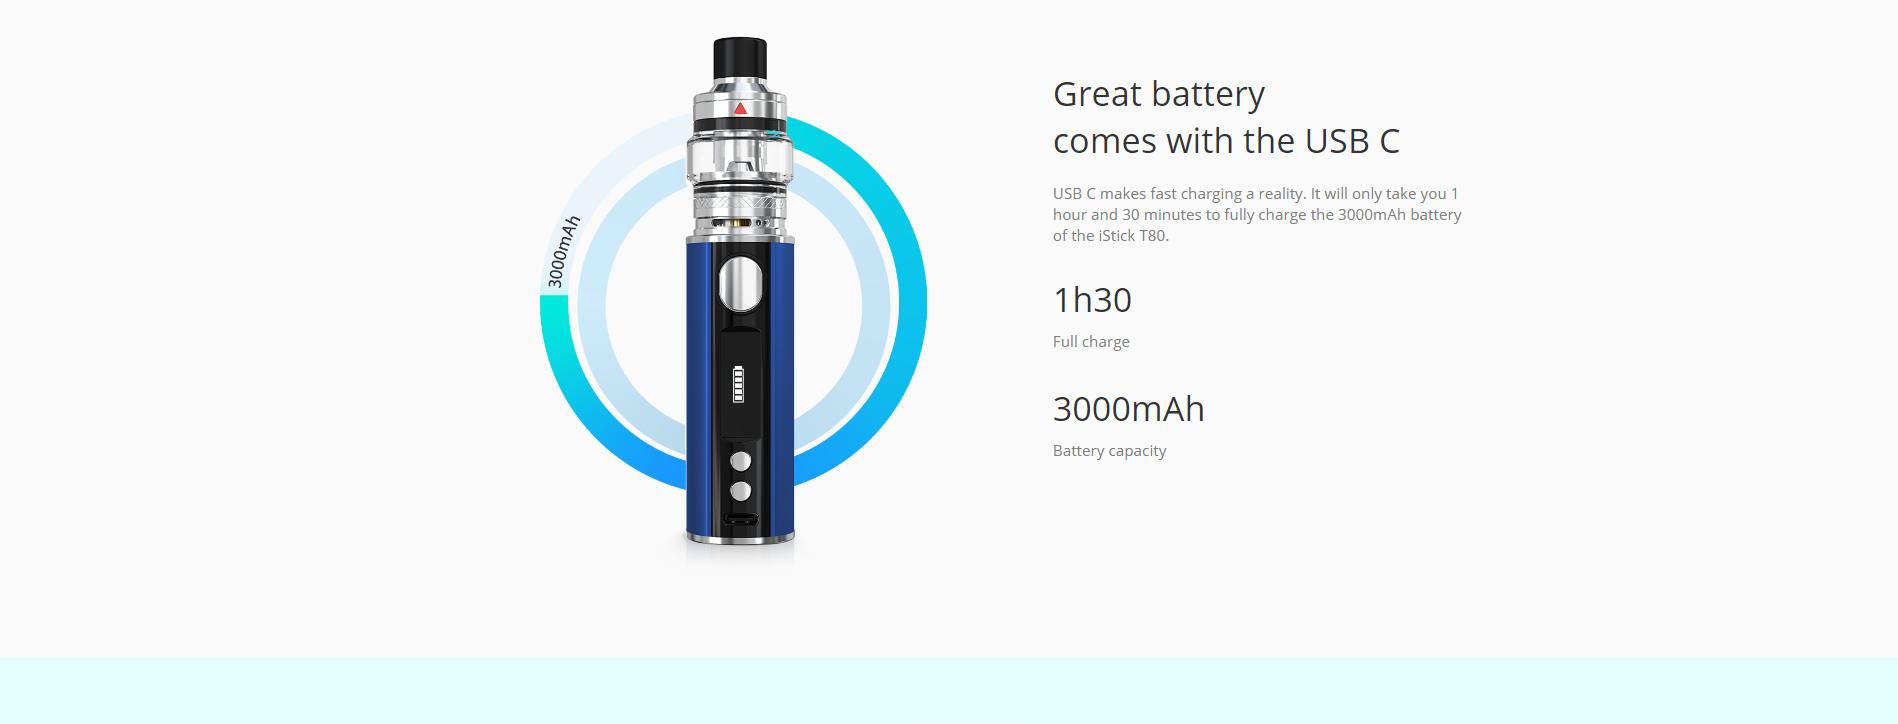 iStick T80 with Pesso